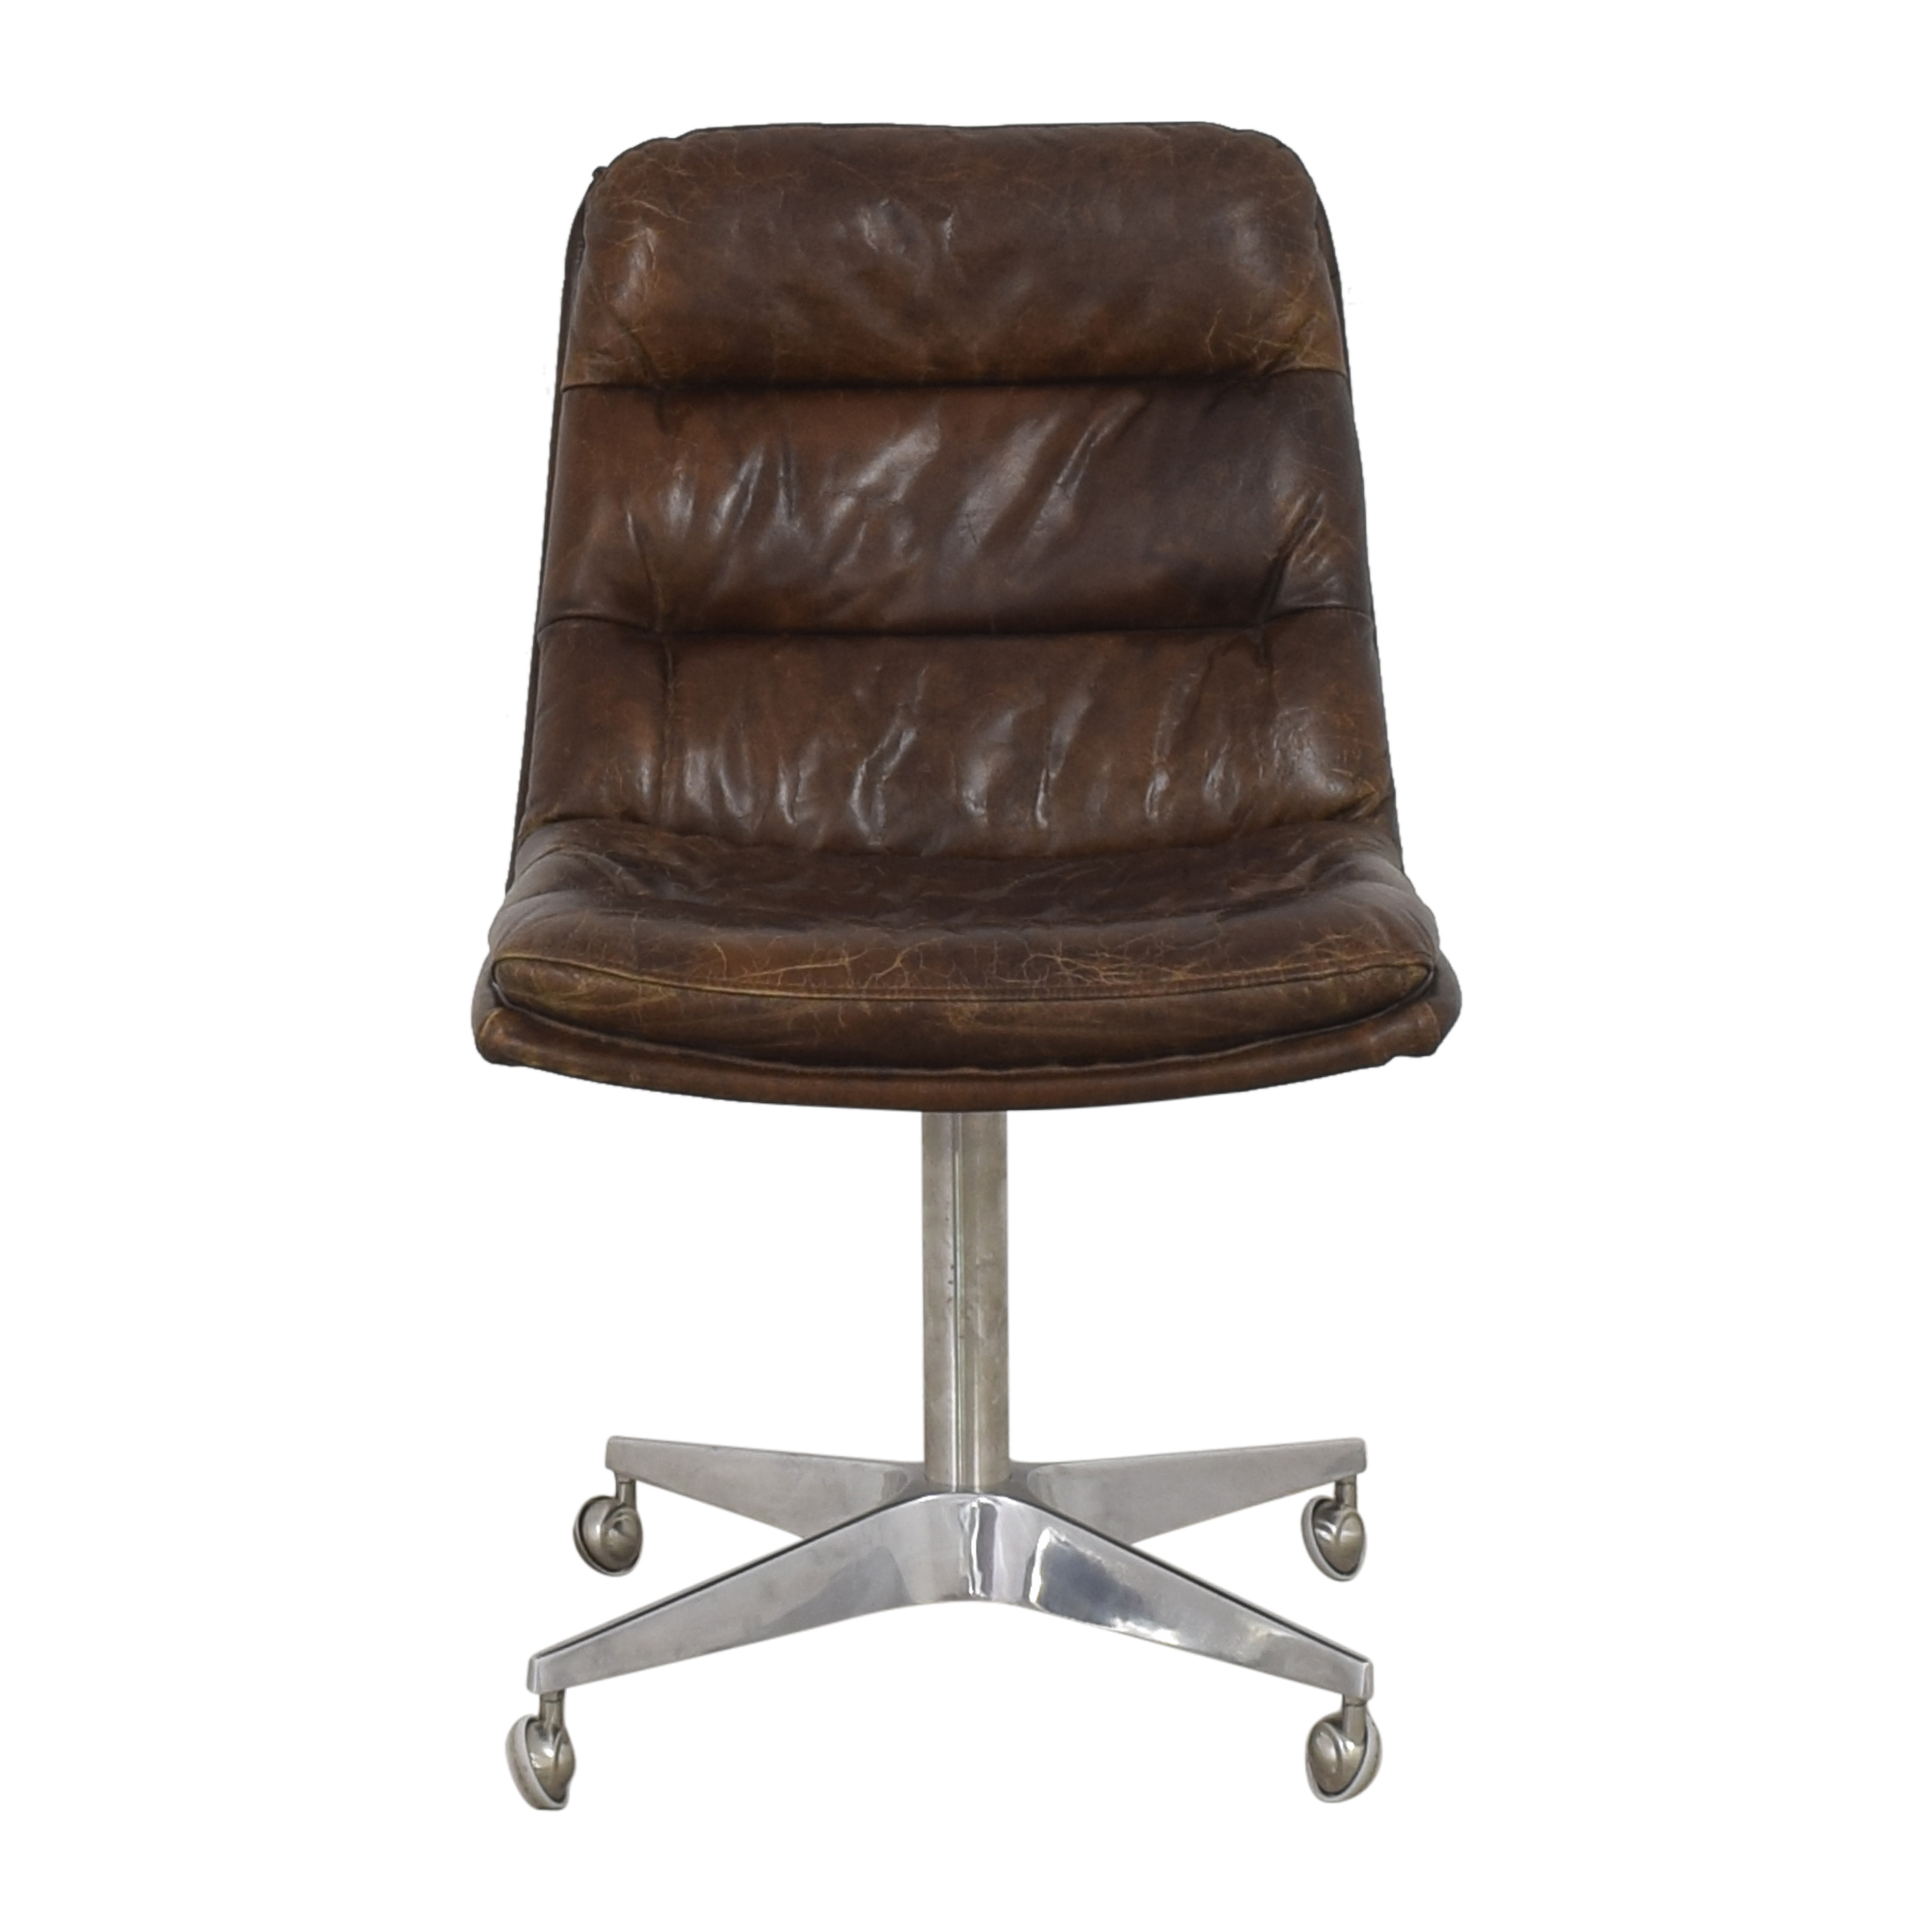 Restoration Hardware Restoration Hardware Griffith Desk Chair  dark brown and silver